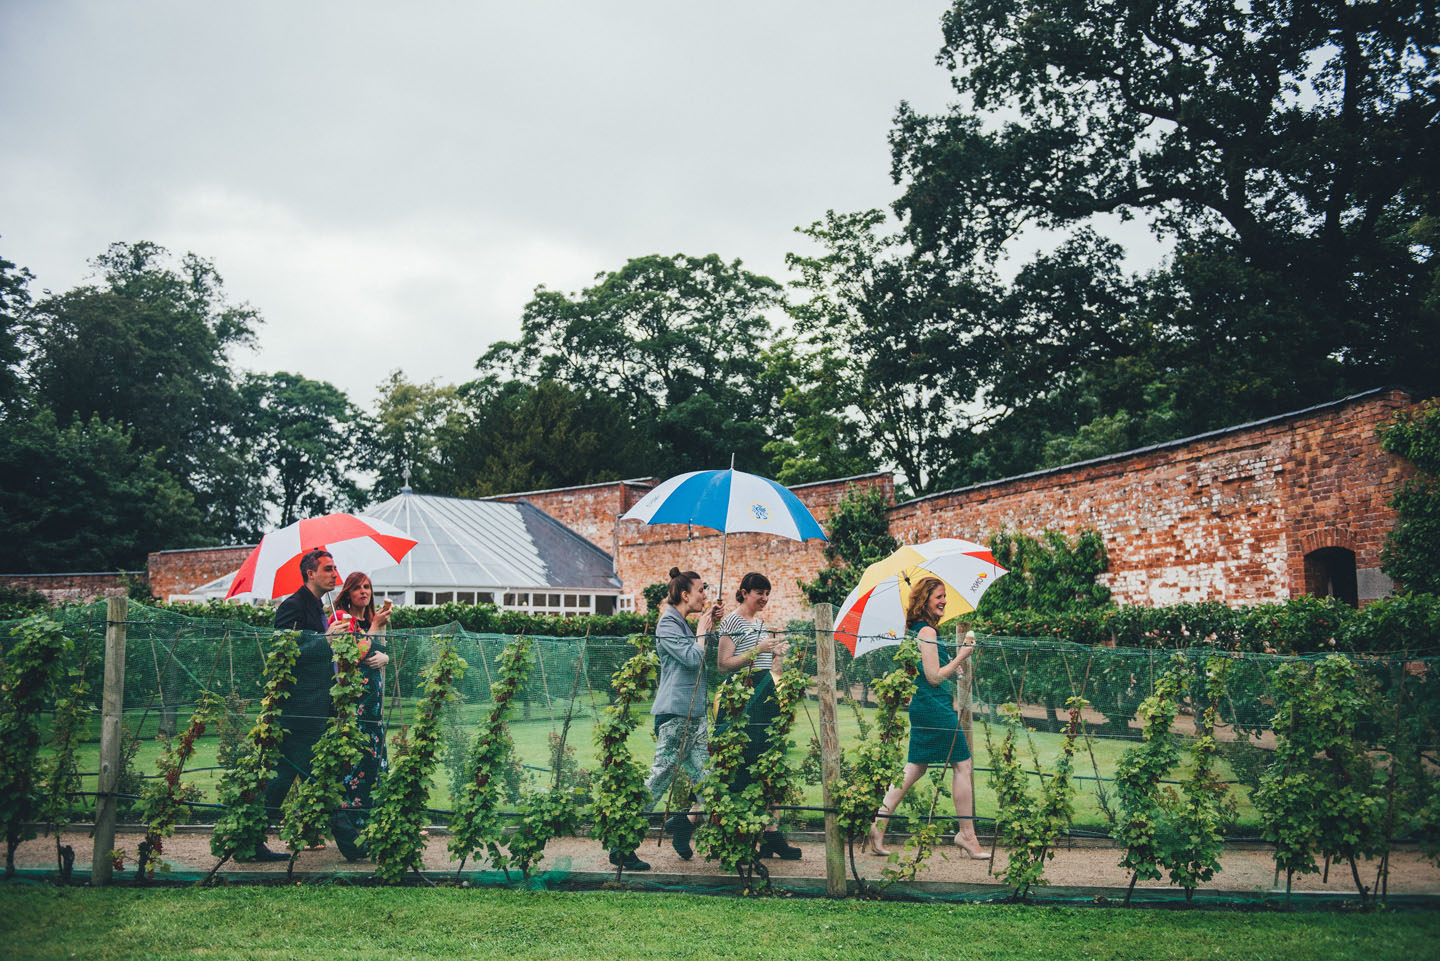 Summer Wedding Ideas - Be Prepared for All Weather with Wedding Brollies - Foil Invite Company Blog